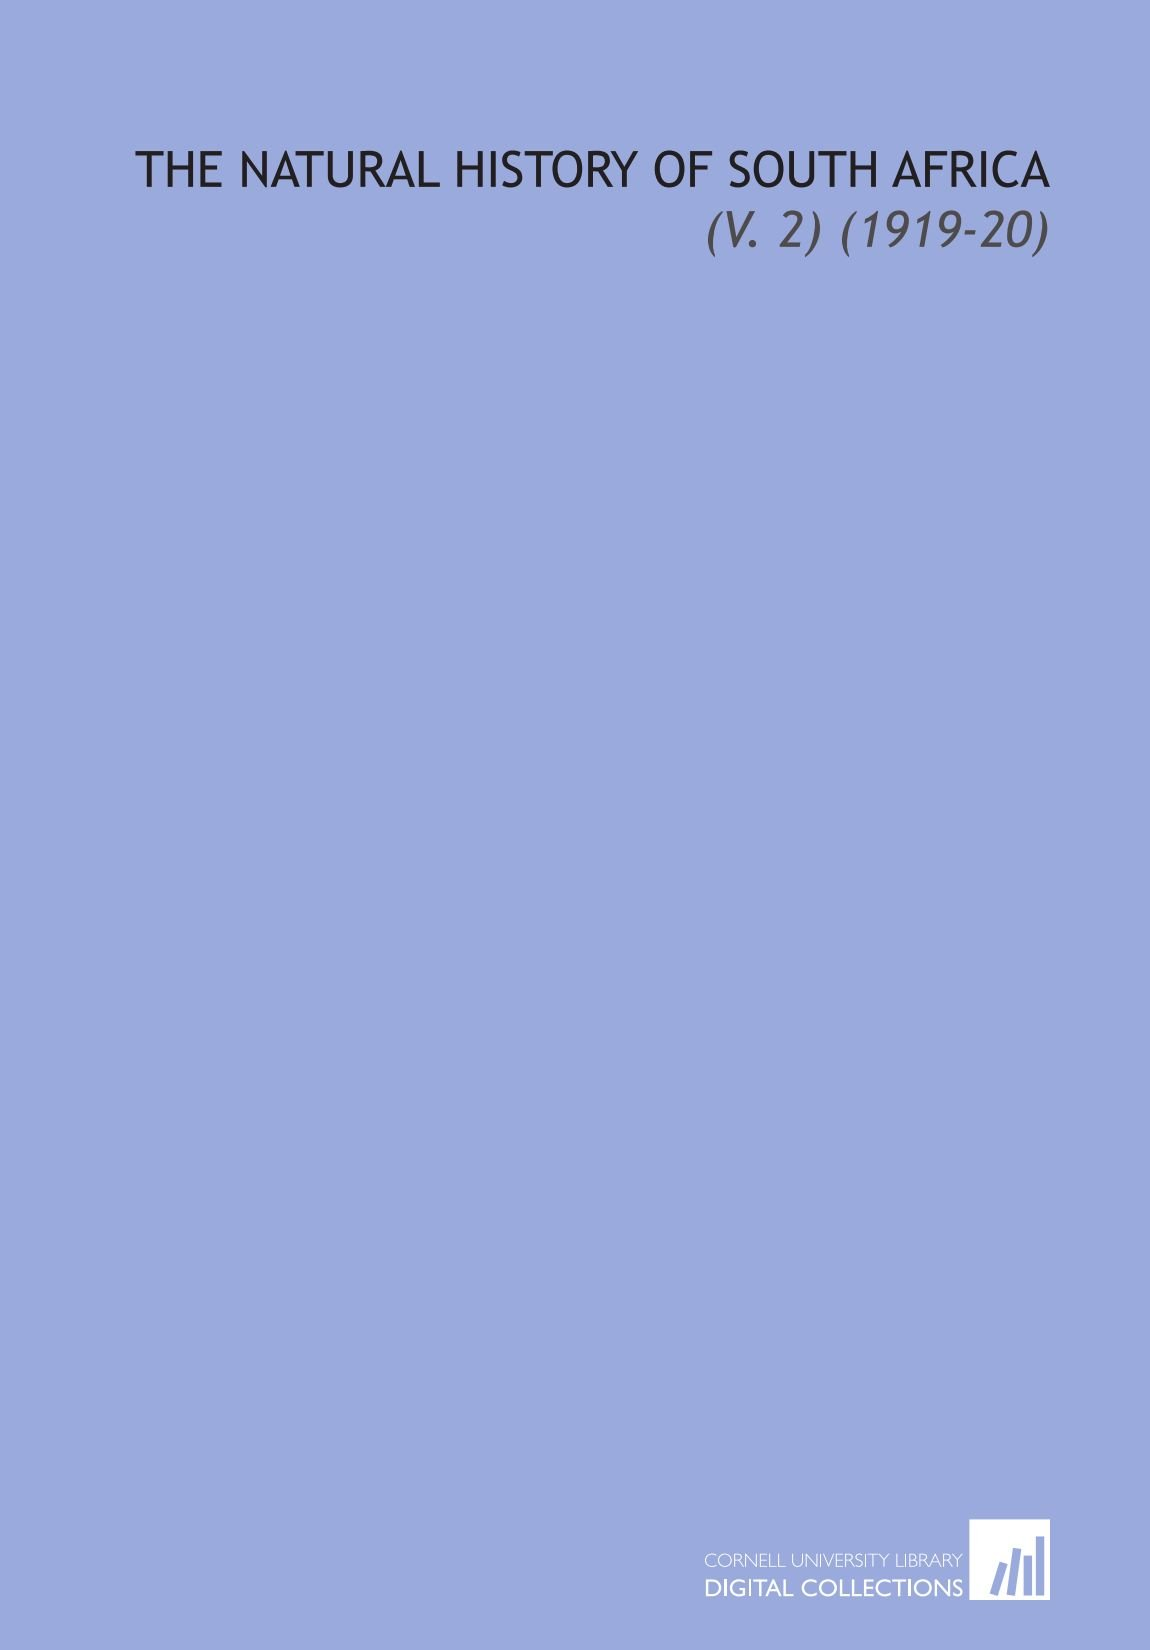 The Natural History of South Africa: (V. 2) (1919-20) PDF